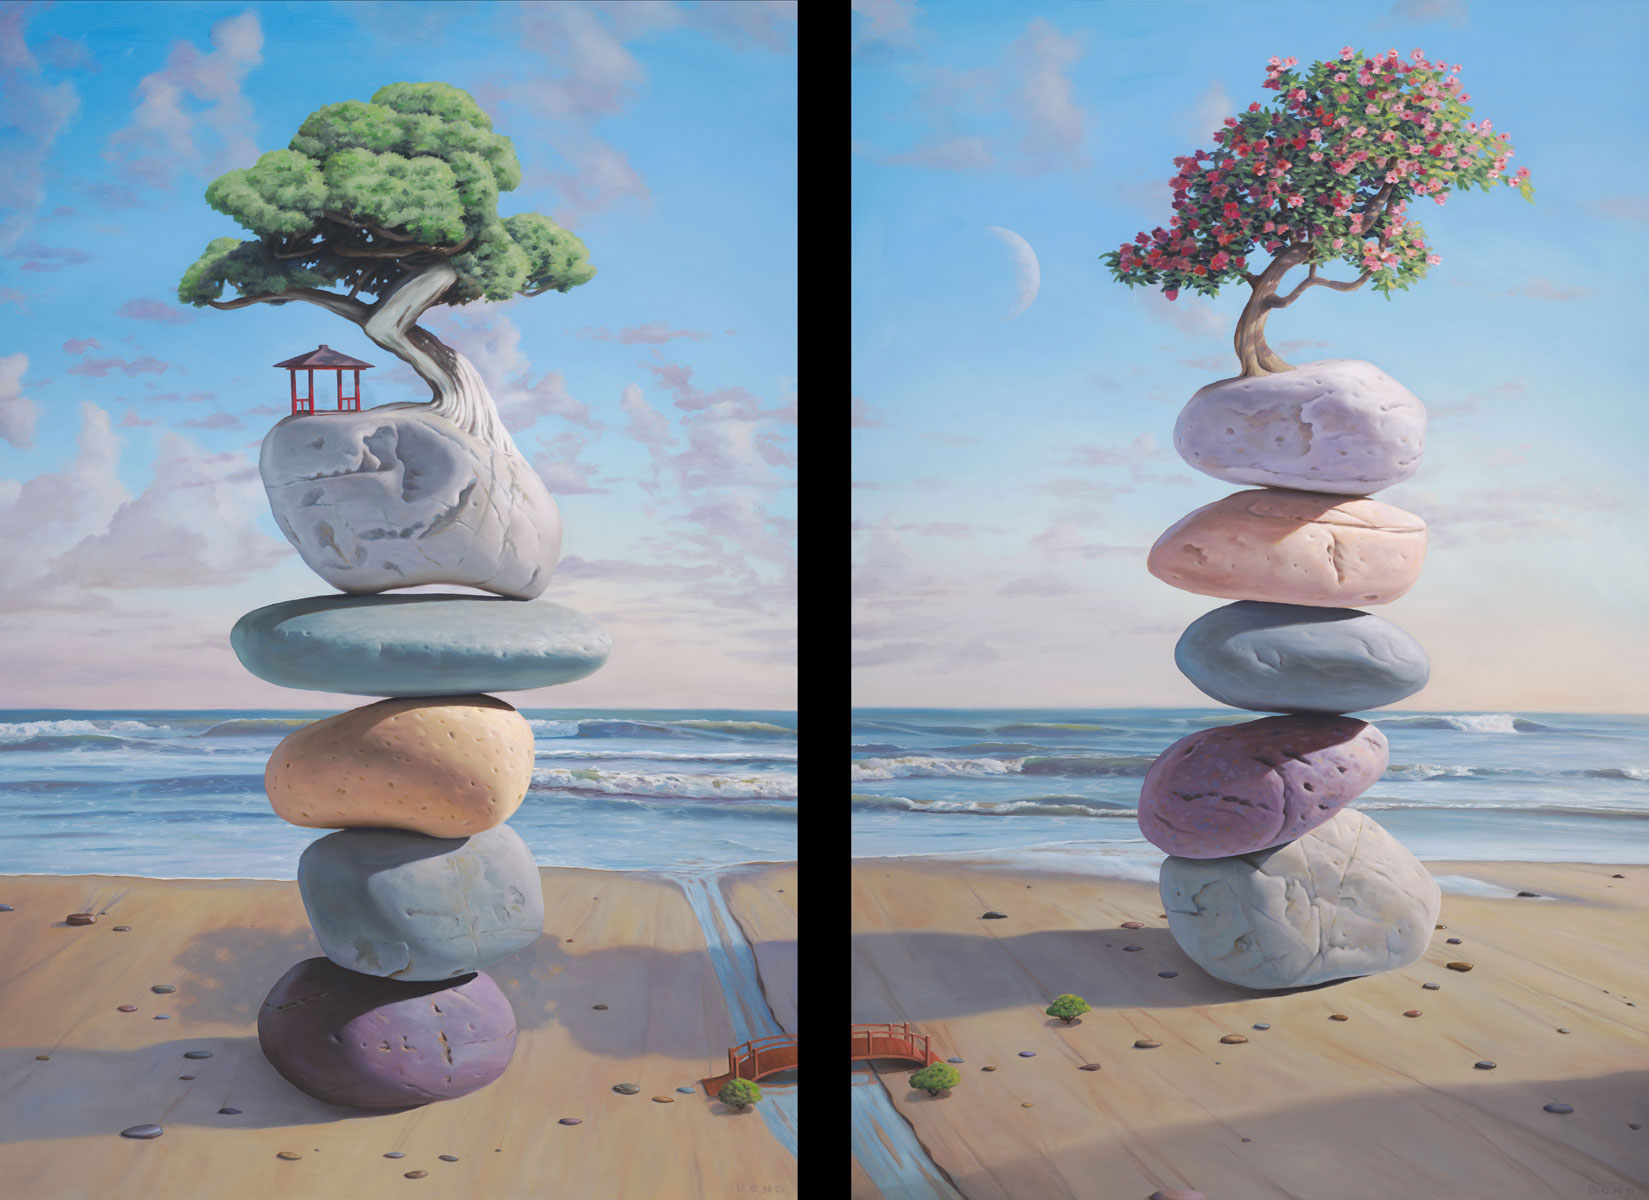 The Lovers,  diptych painting of stacked rocks connected by a bridge over a stream, painting with male and female essence, stacked stones with shelter and flowers on tree painting about home is where the heart is, art about growth and expansion, ocean, sea, sand, wave, water, rock, stone, balance, art with cairn balancing stones, bridge, path, tree, bonsai, beach, manifest, cherry blossom, cherry tree, moon, soulful uplifting inspirational art, soul stirring illusion art, romantic art,  surrealism, surreal art, dreamlike imagery, fanciful art, fantasy art, dreamscape visual, metaphysical art, spiritual painting, metaphysical painting, spiritual art, whimsical art, whimsy art, dream art, fantastic realism art, limited edition giclee, signed art print, fine art reproduction, original magic realism oil painting by Paul Bond